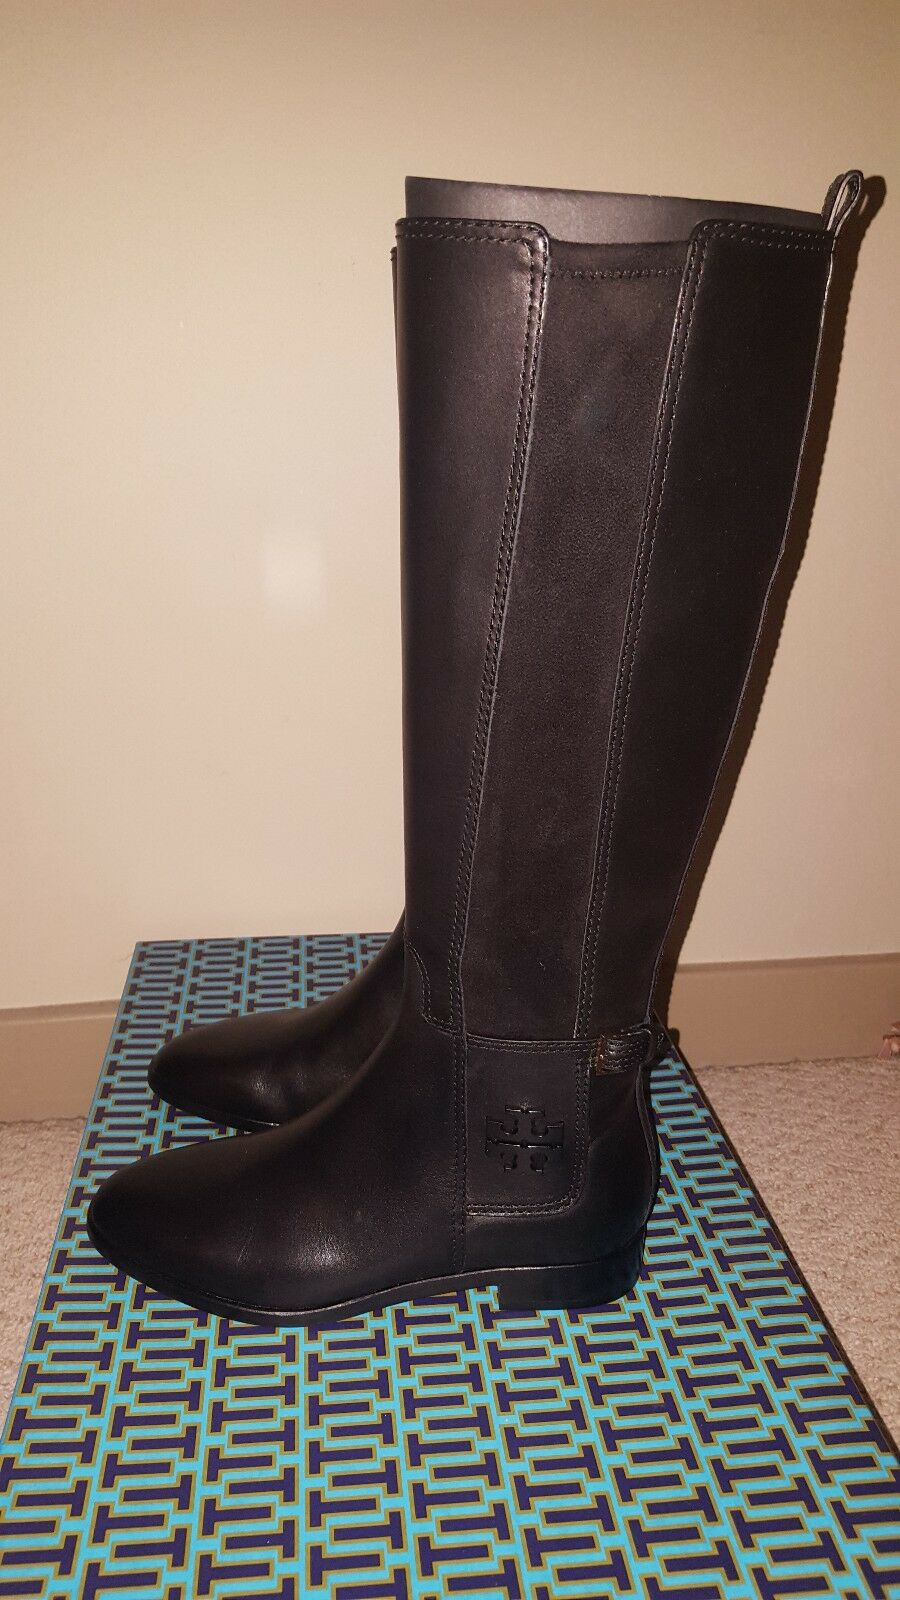 NEW WITH BOX Tory Burch Wyatt Boots in Black Size 6 FREE SHIPPING